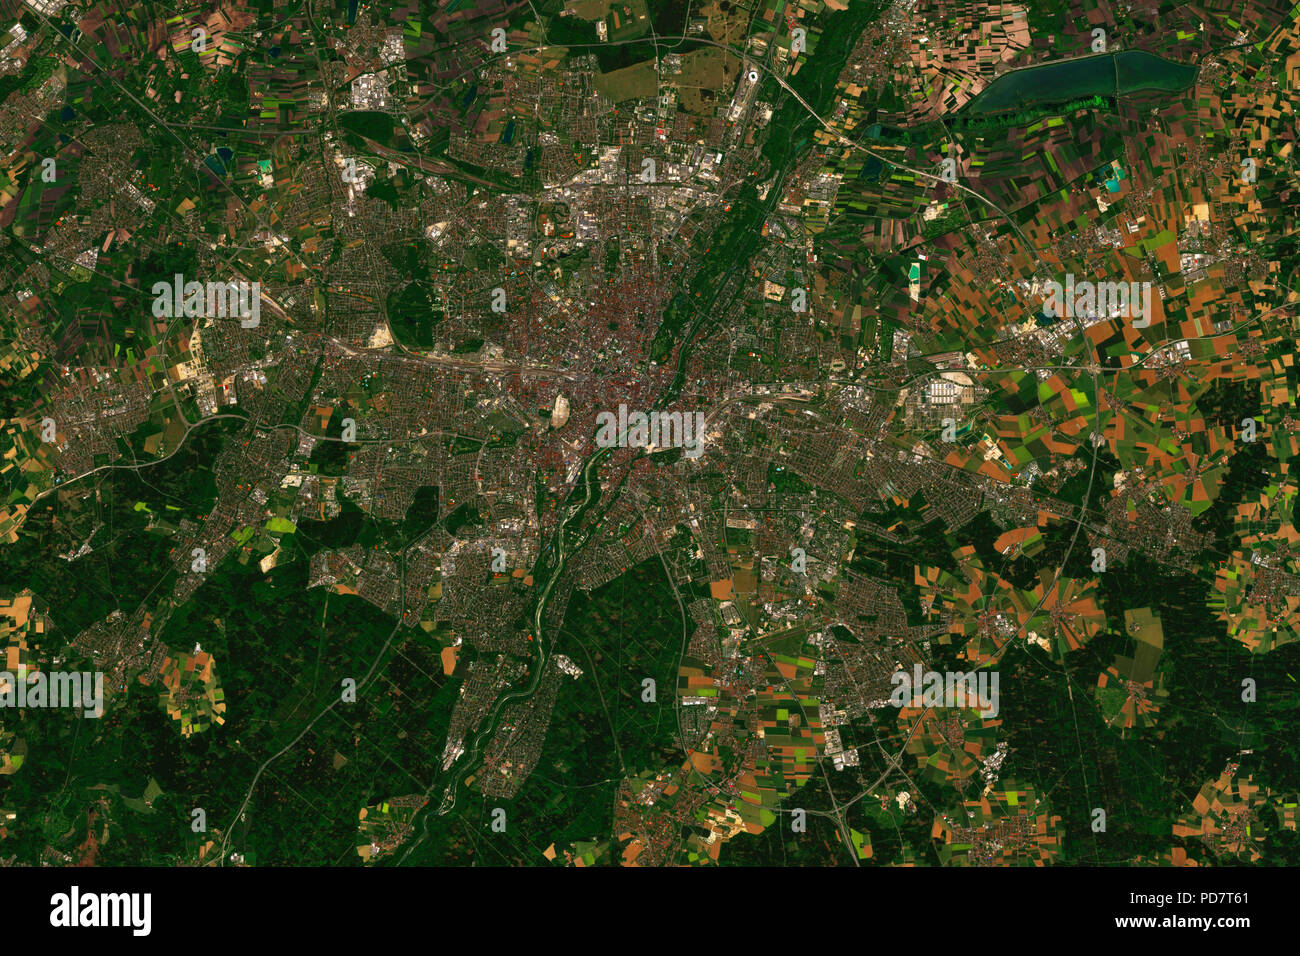 Munich in Bavaria, Germny seen from space - contains modified Copernicus Sentinel data from ESA - Stock Image